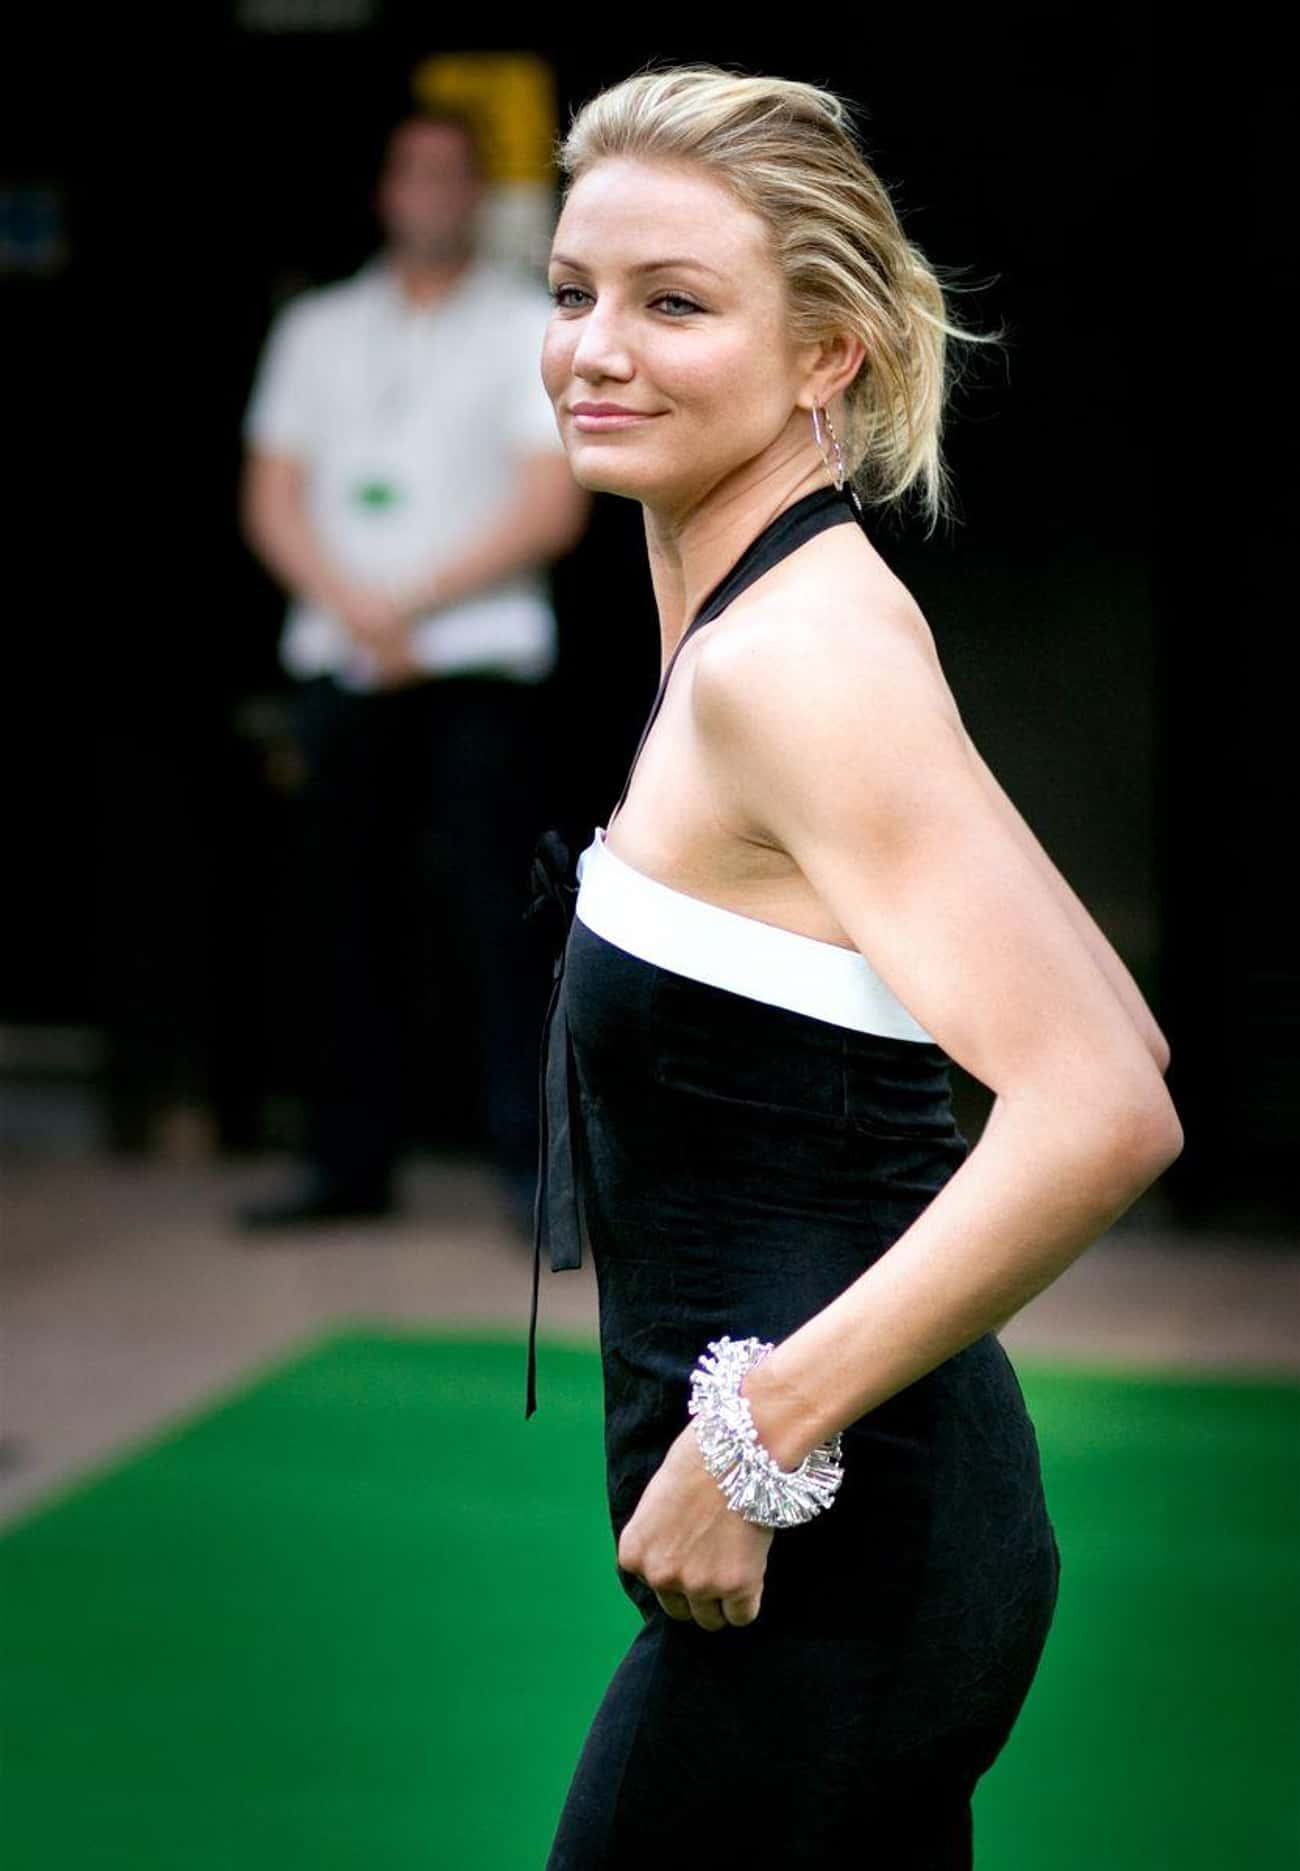 Cameron Diaz is listed (or ranked) 3 on the list 20 Famous ESFPs